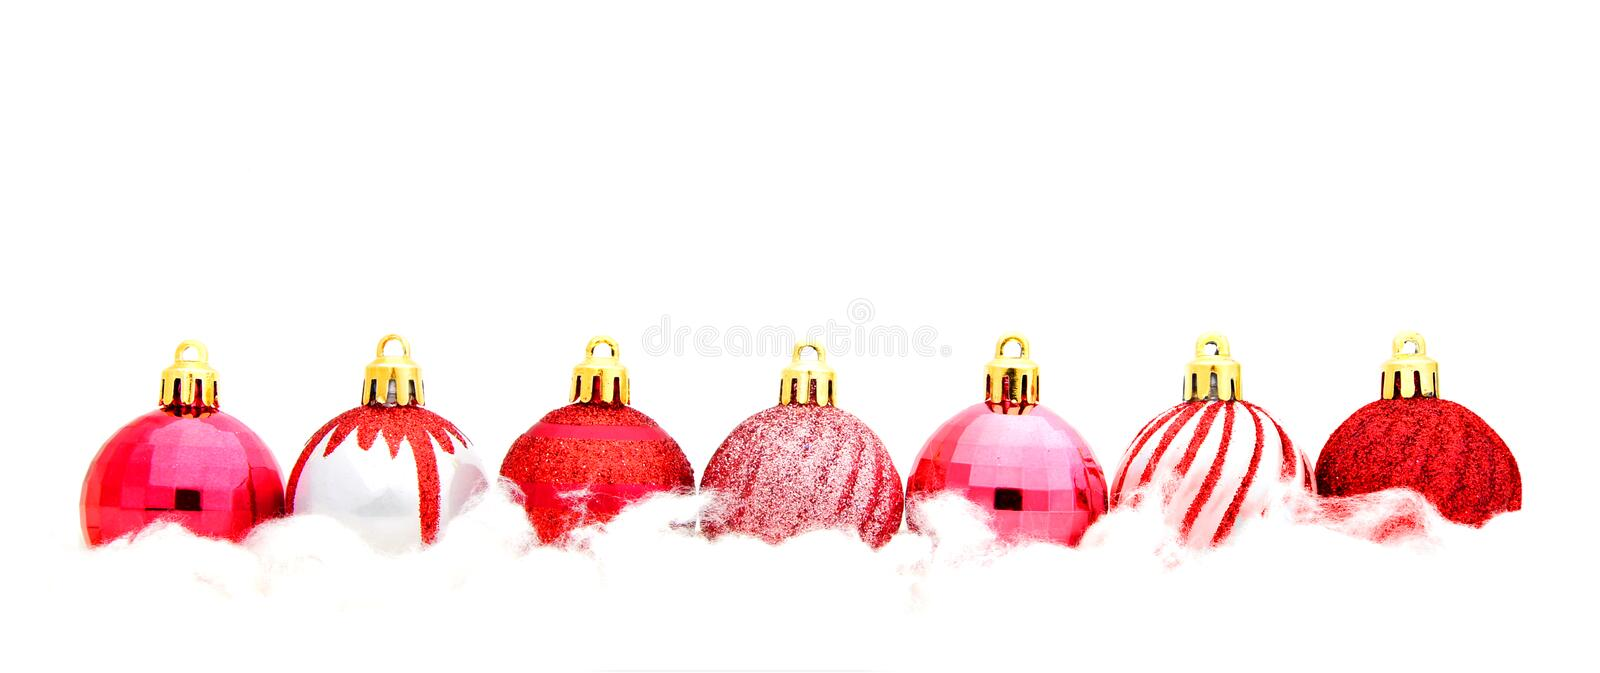 Red Christmas Bauble Border Stock Image